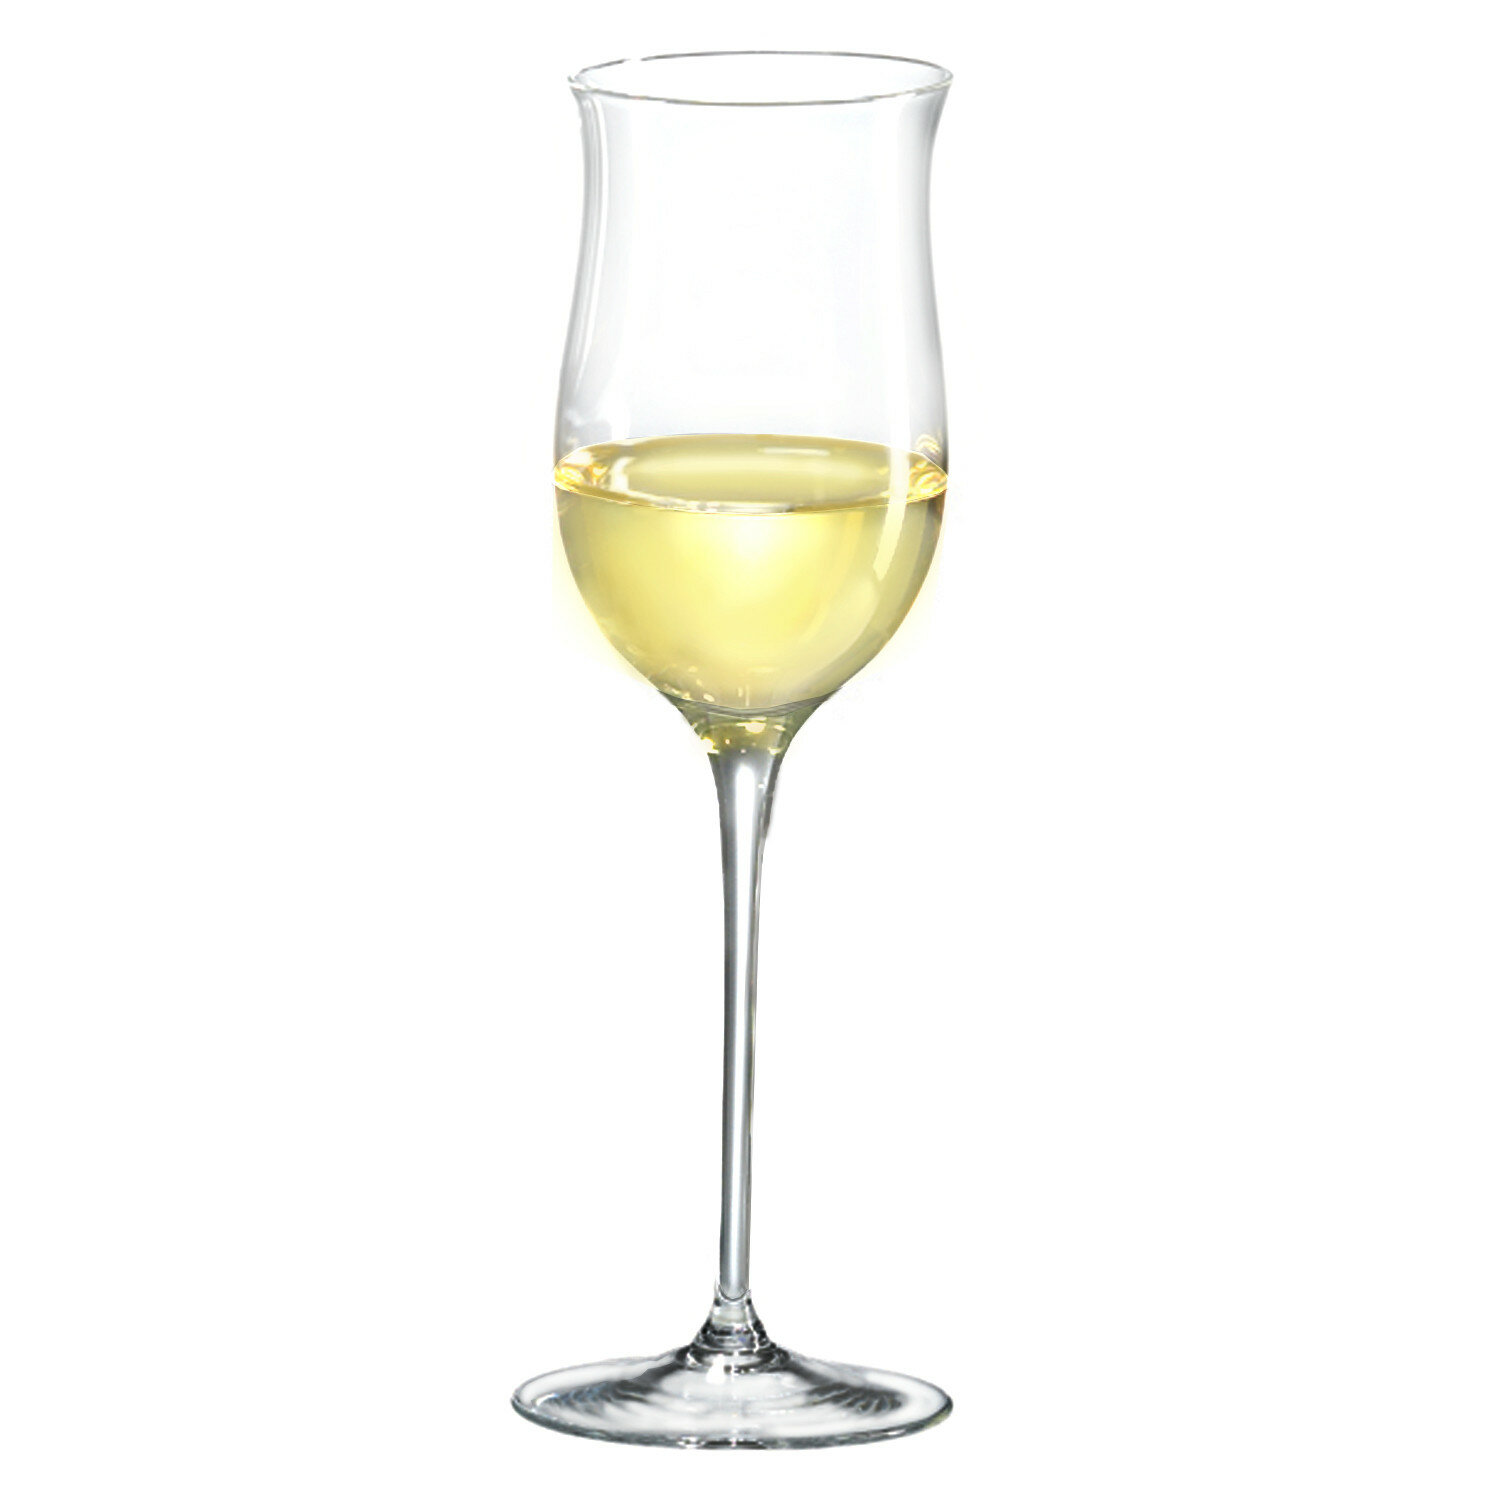 e25c6185ca9 Details about Ravenscroft Crystal Classics 8 oz. Crystal All Purpose Wine  Glass RVC1026